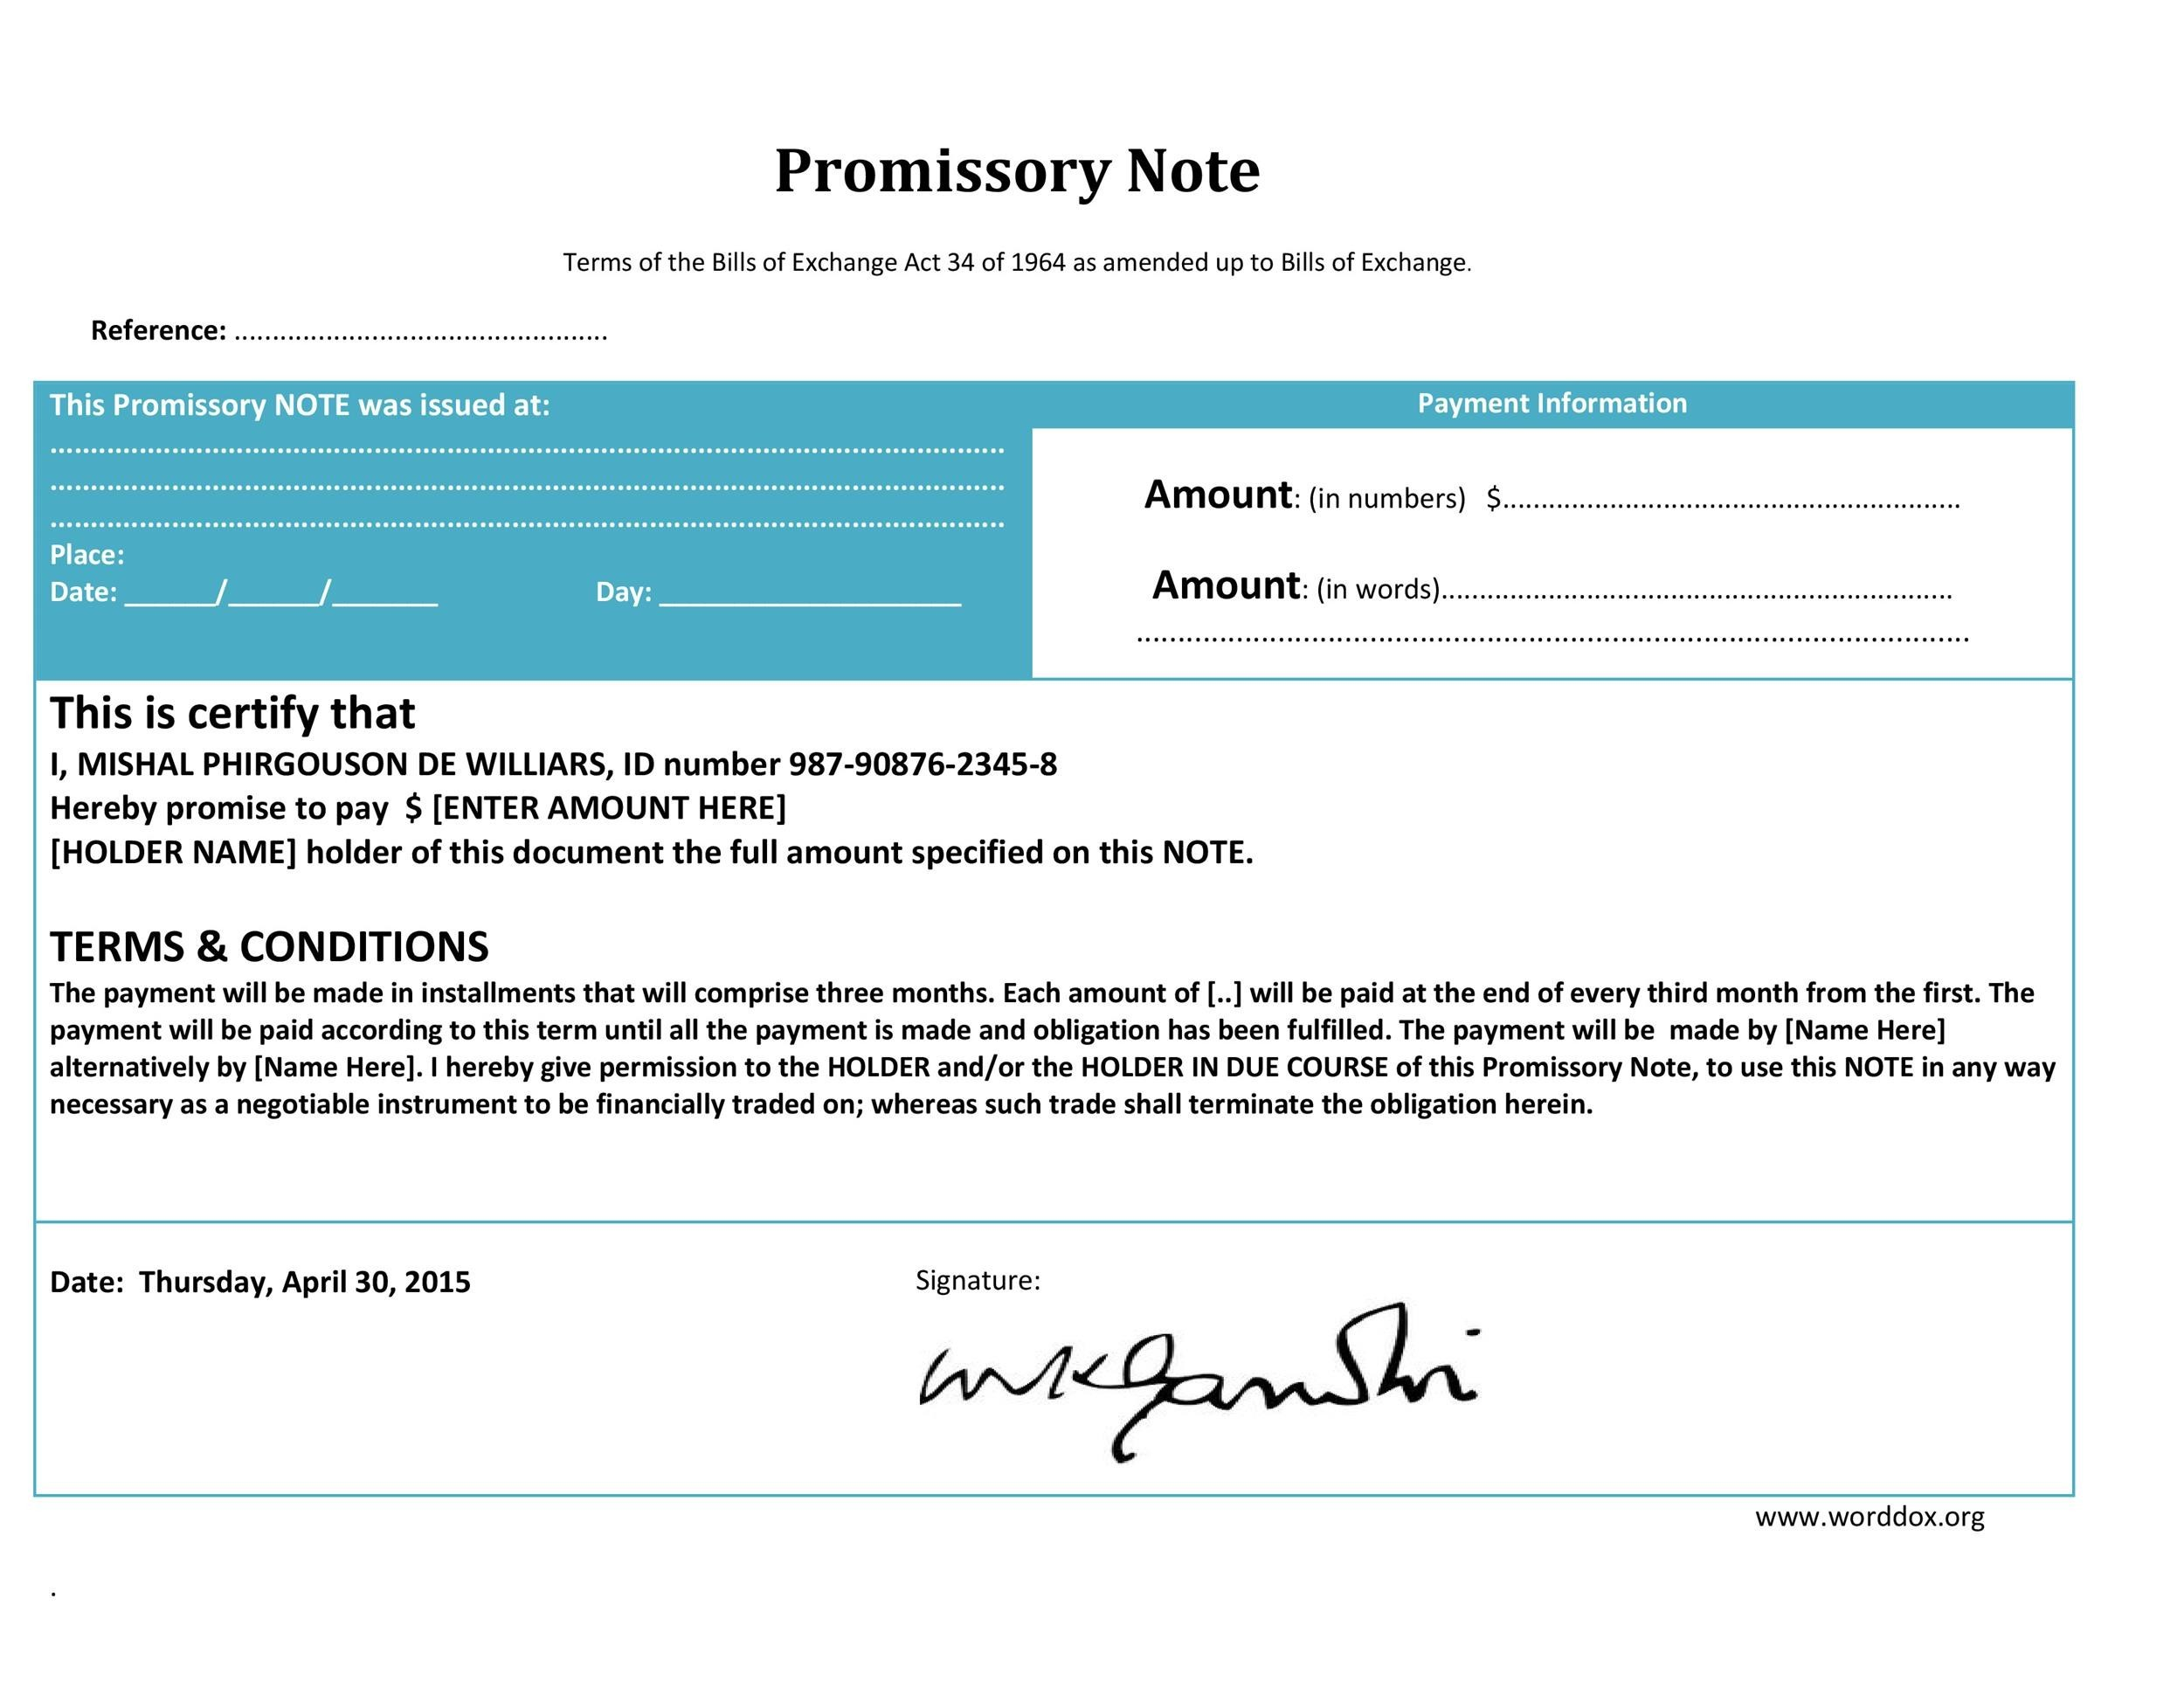 45 FREE Promissory Note Templates  Forms Word  PDF ᐅ Template Lab